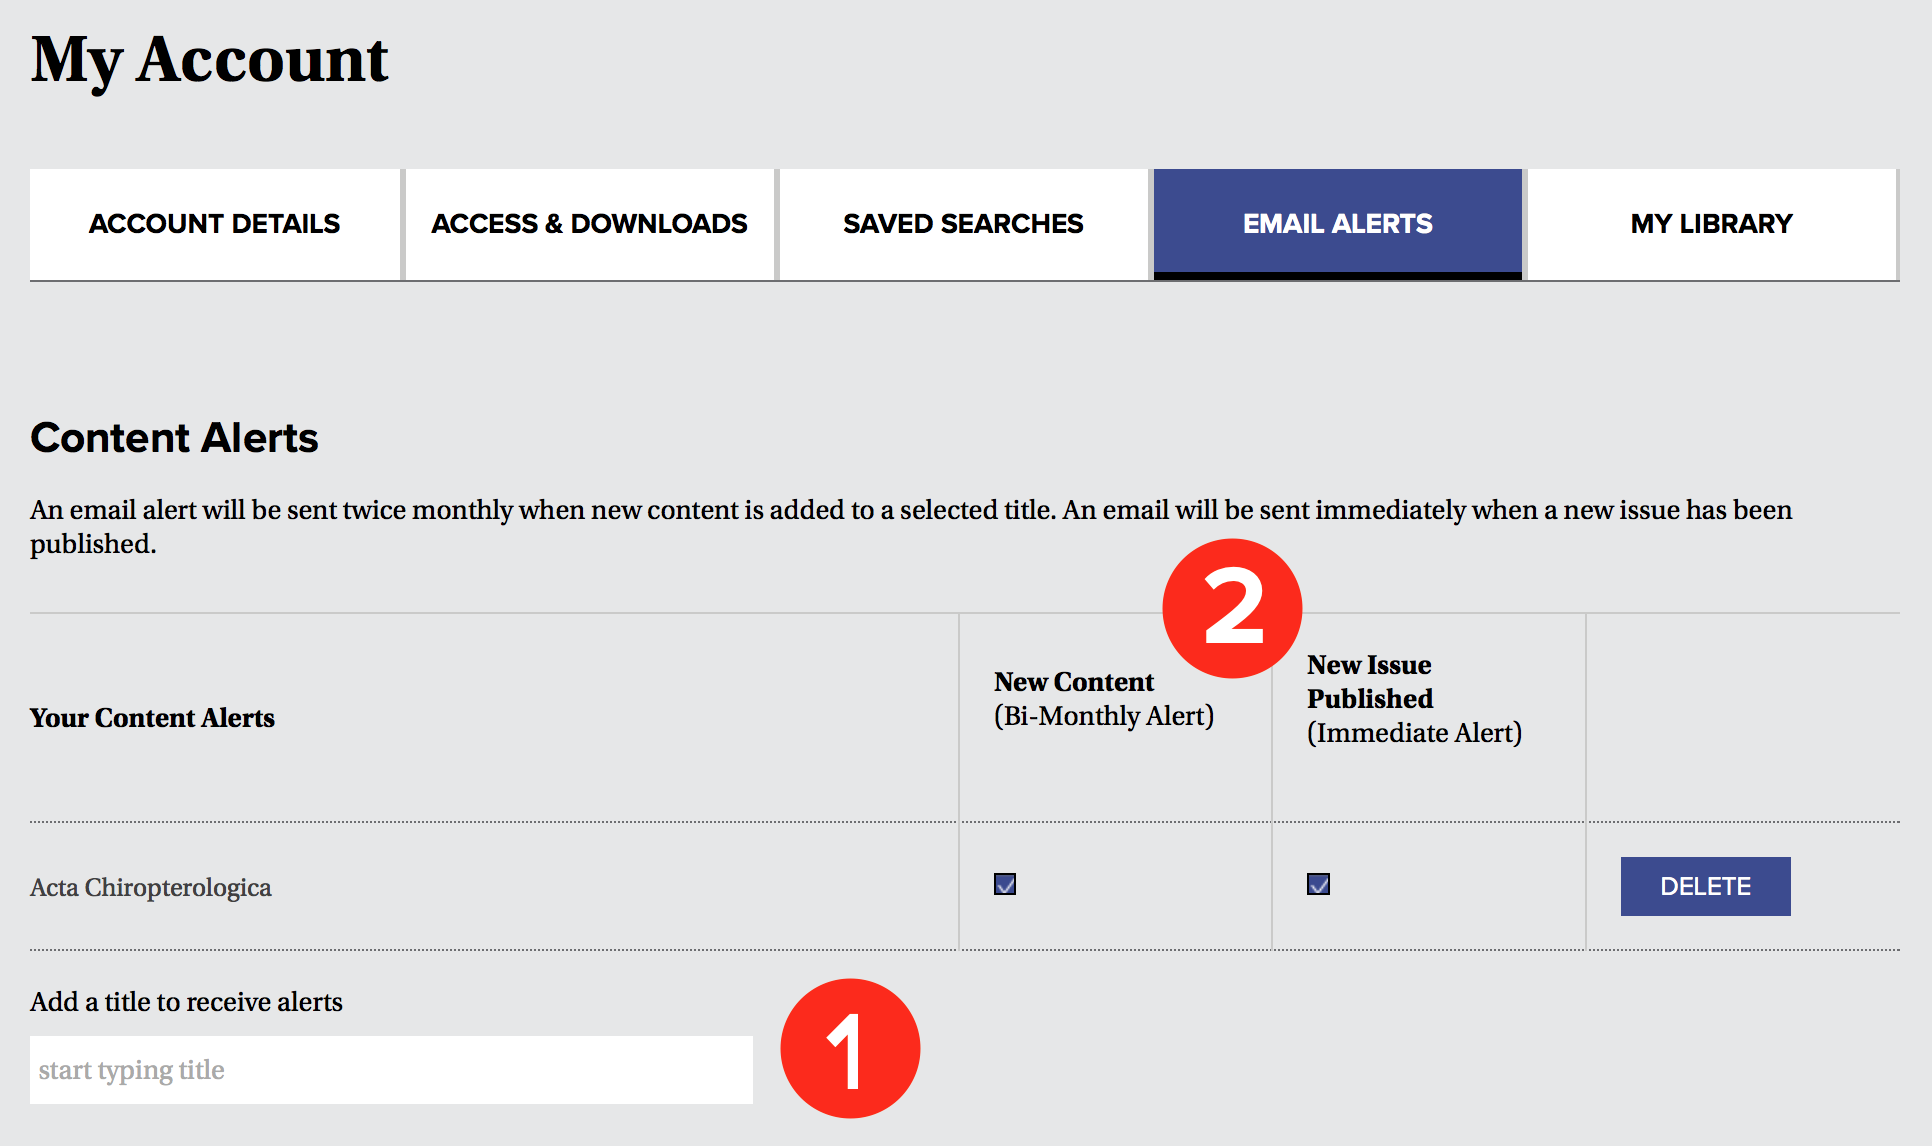 A screenshot of the Content Alert portion of the Email Alert tab. A number 1 indicates the field to enter journal titles, and a number 2 indicates the alert frequency options.